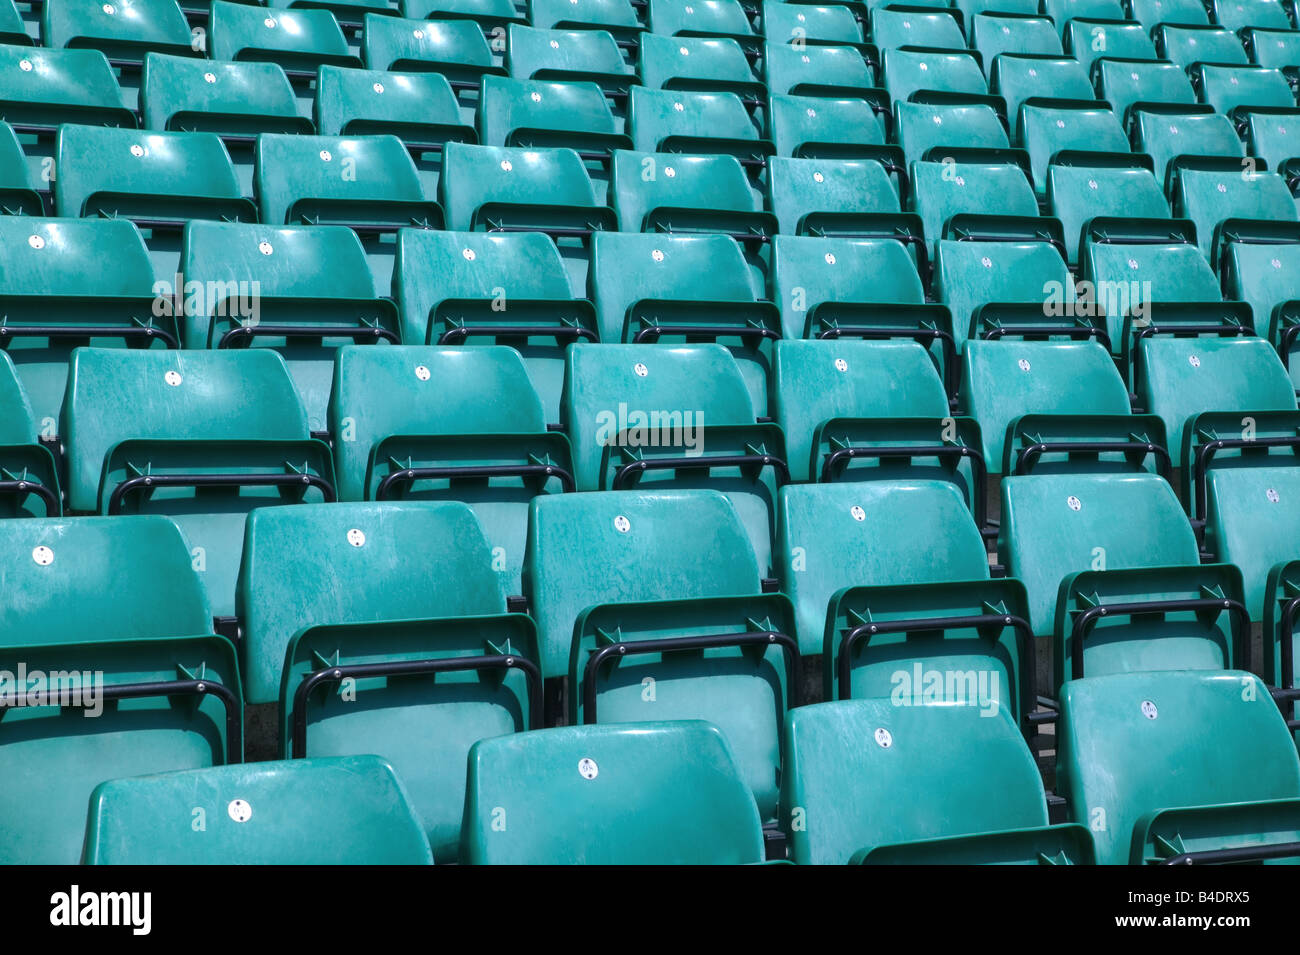 Rows of empty green plastic chairs in a sports stadium - Stock Image